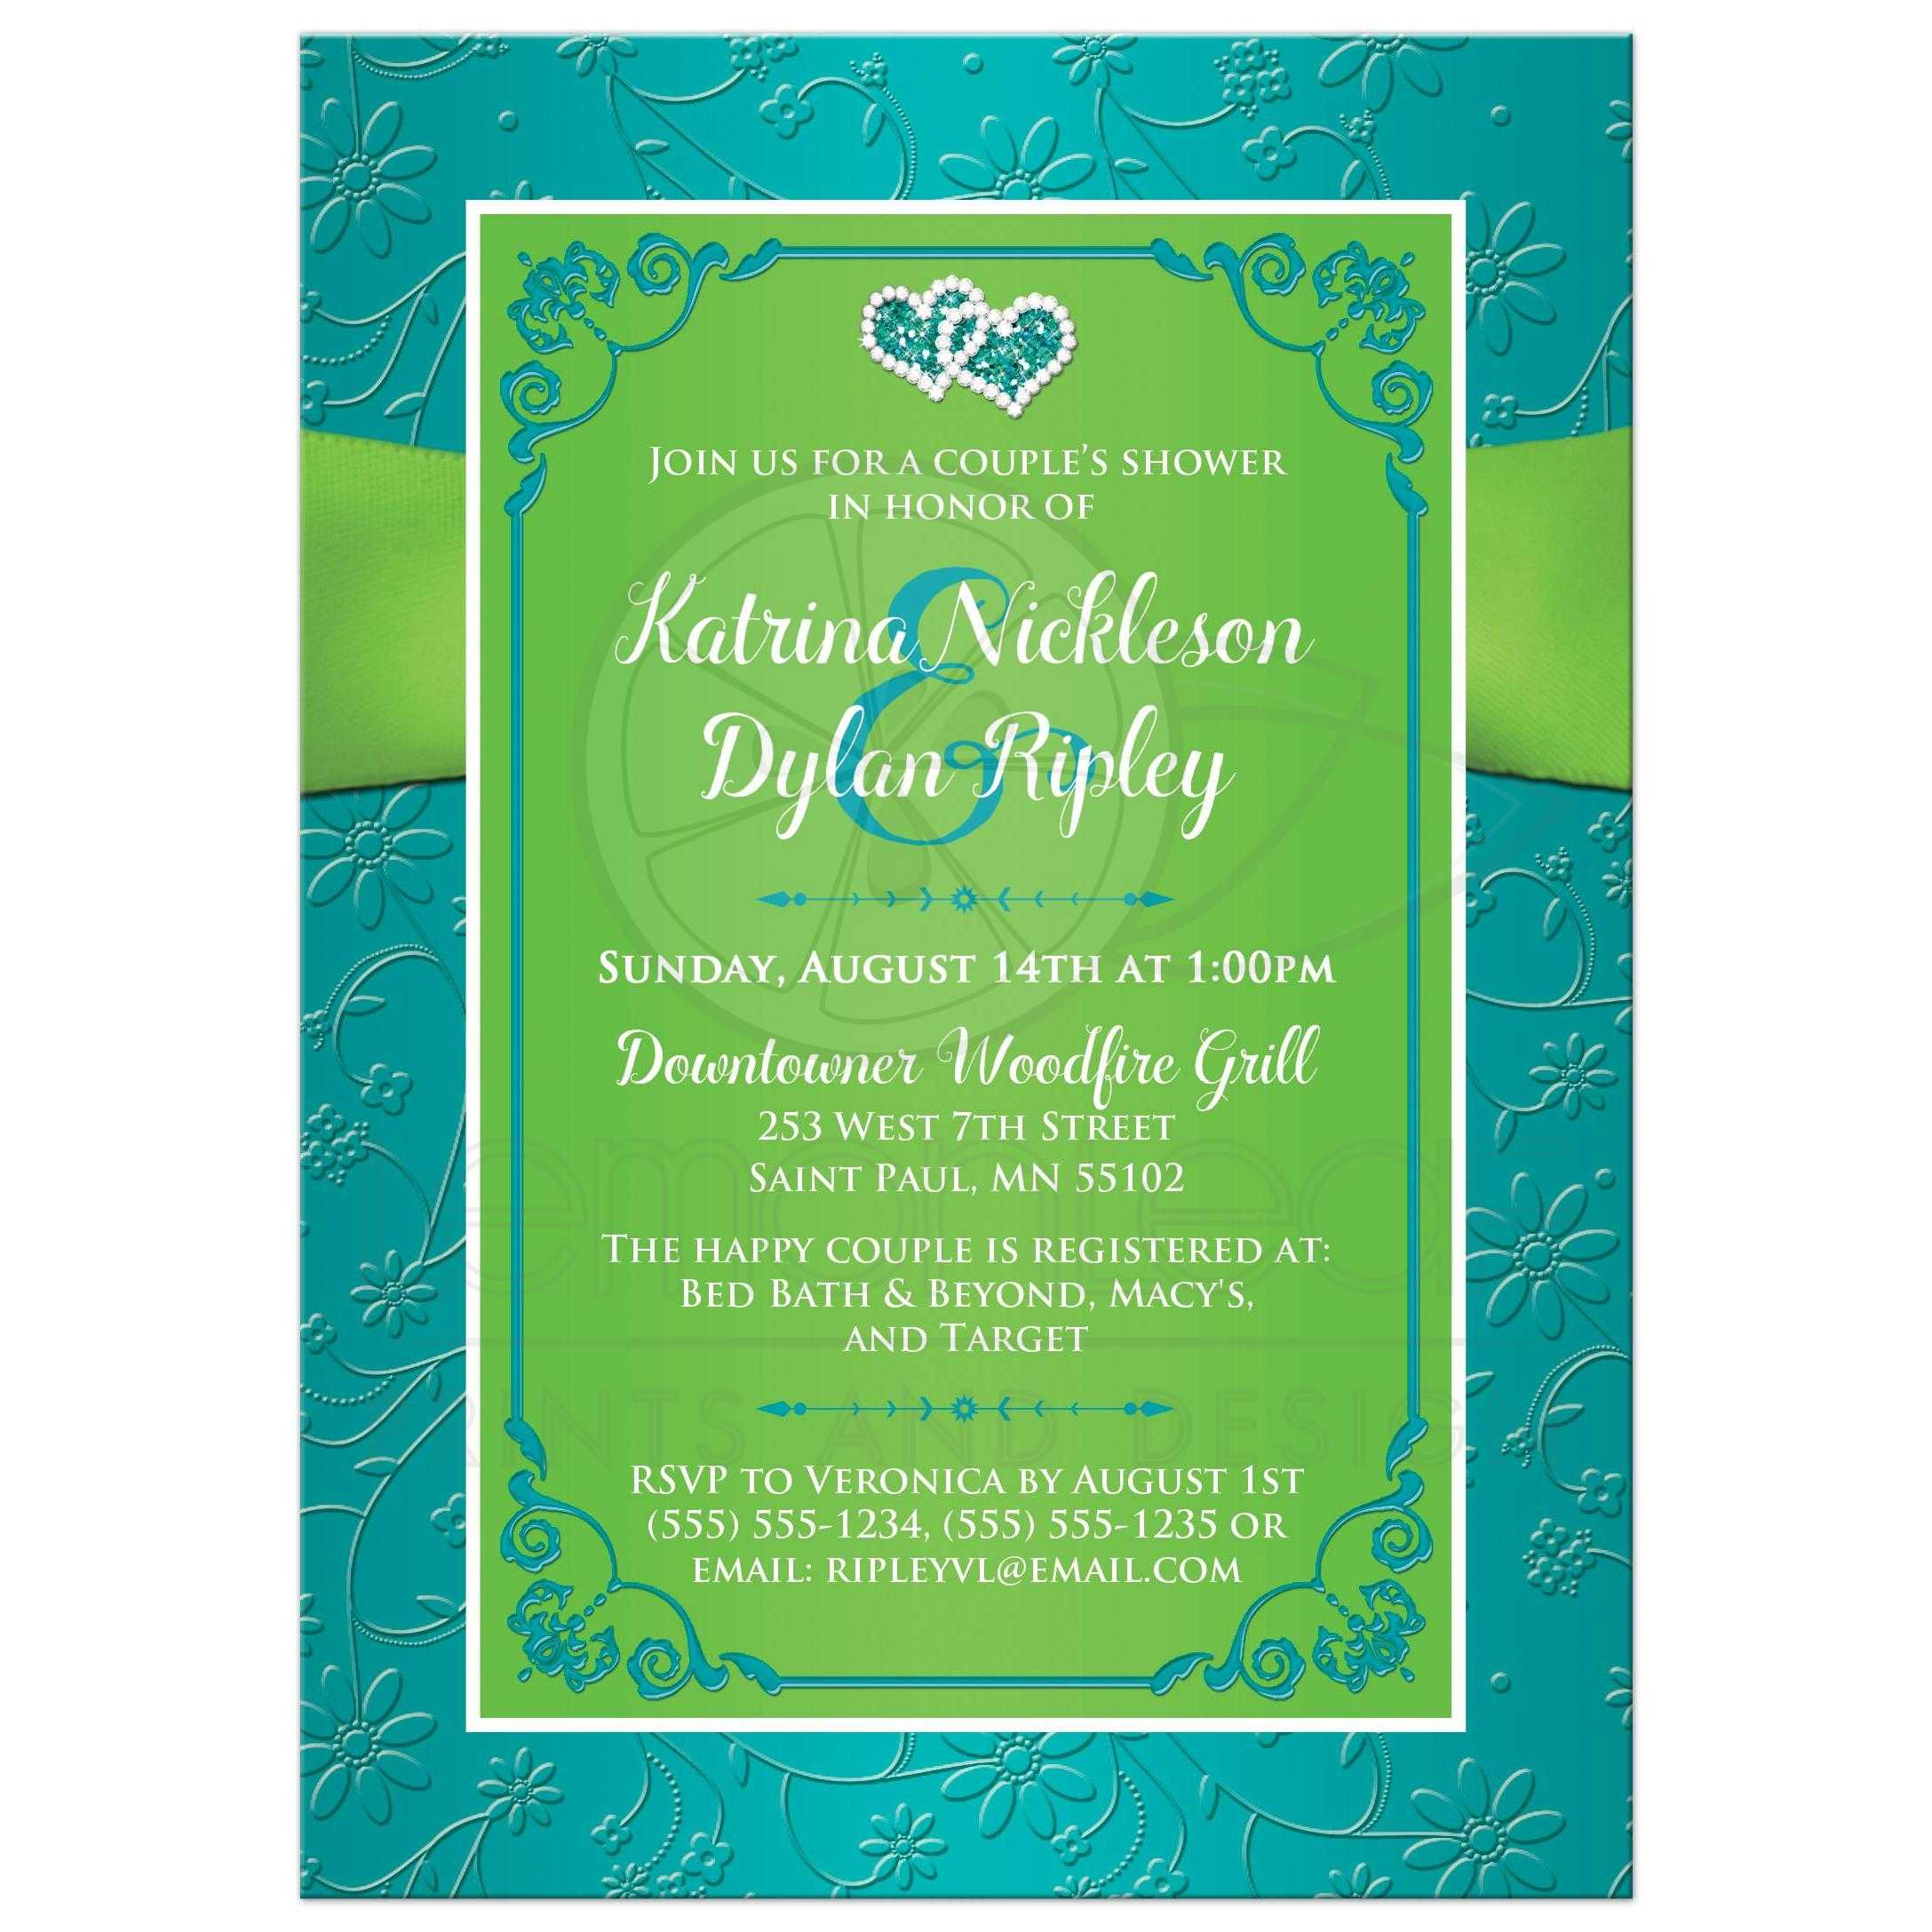 Wedding Or Couple S Shower Invitation Turquoise Lime Green Floral